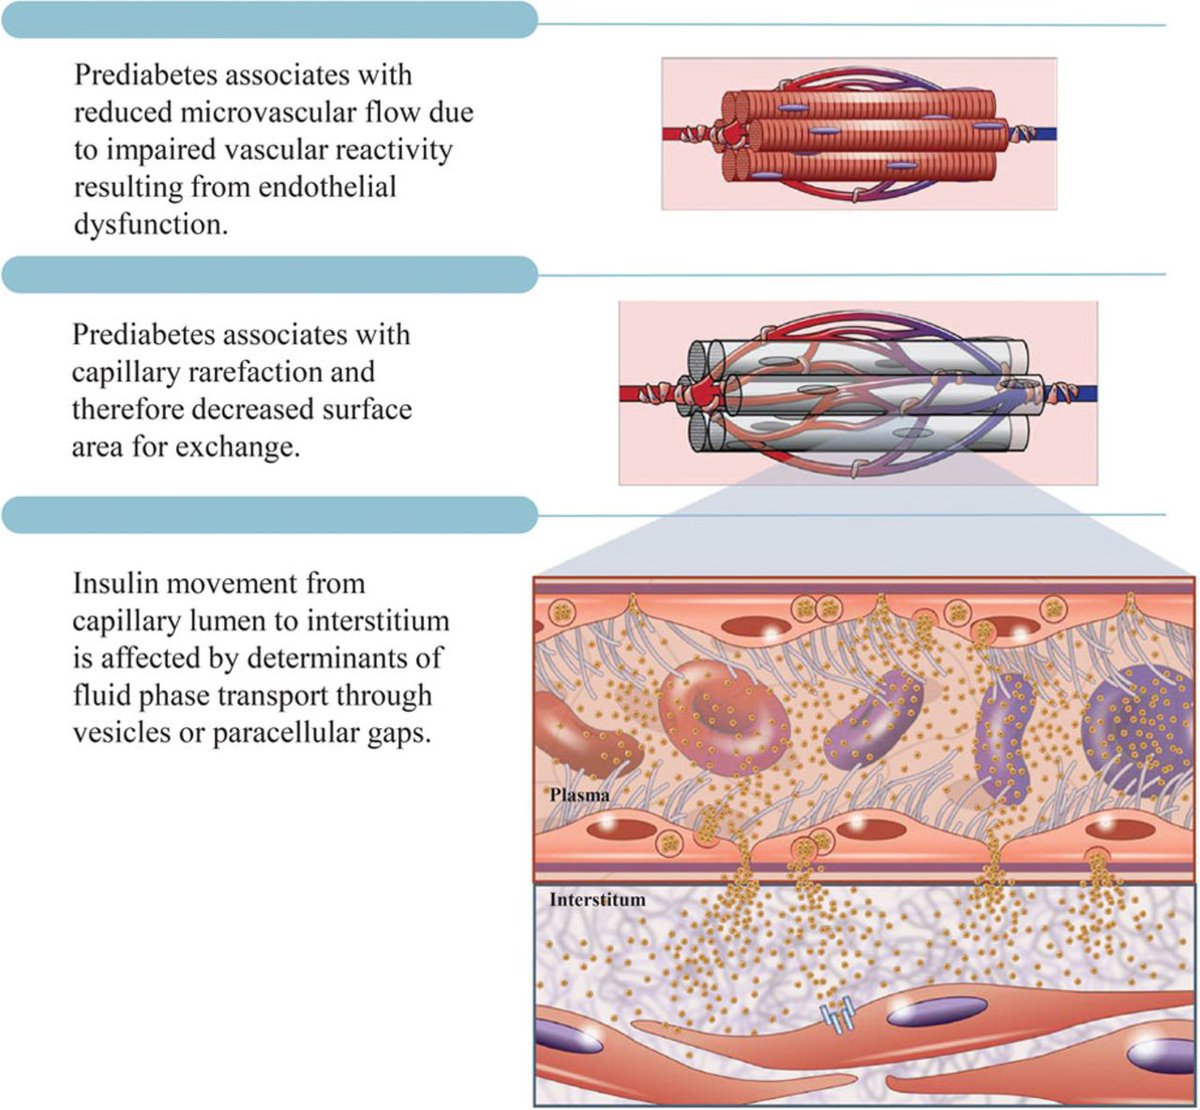 test Twitter Media - REVIEW:  The Vasculature in Prediabetes   https://t.co/sOzpuGjh7Q   #Prediabetes #ScienceTwitter #CardiovascularResearch #HeartResearch #Diabetes #cardiovasculardisease #CardiovascularHealth  #insulinresistance #Insulin #obesity #HealthRisks #RiskFactors #hyperglycemia https://t.co/giT2r8sE9u